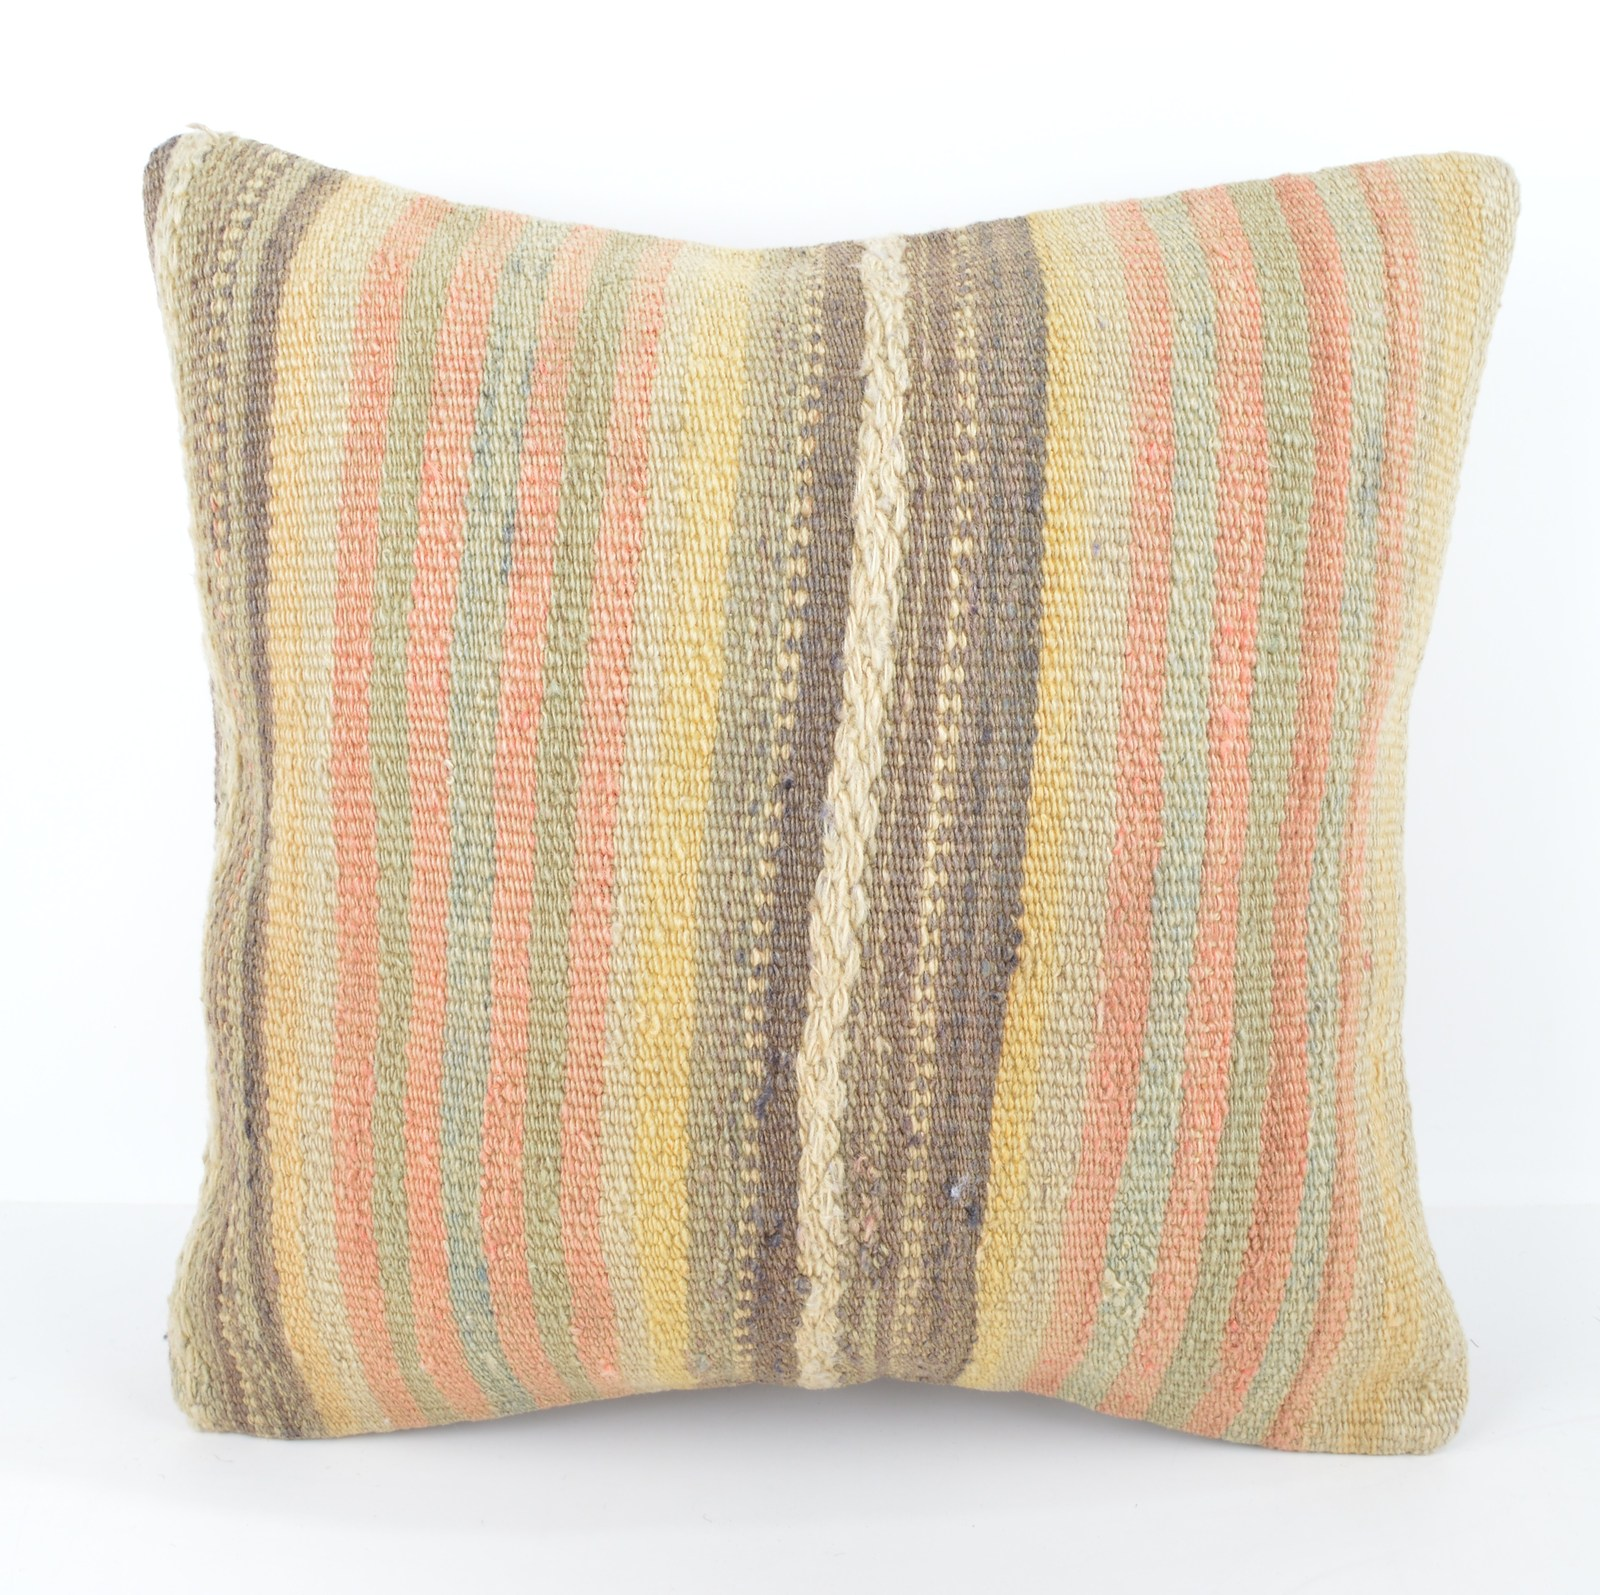 Turkish Kilim Throw Pillows : Turkish cushion decorative throw pillow kilim pillows decorative pillow outdoor - Pillows